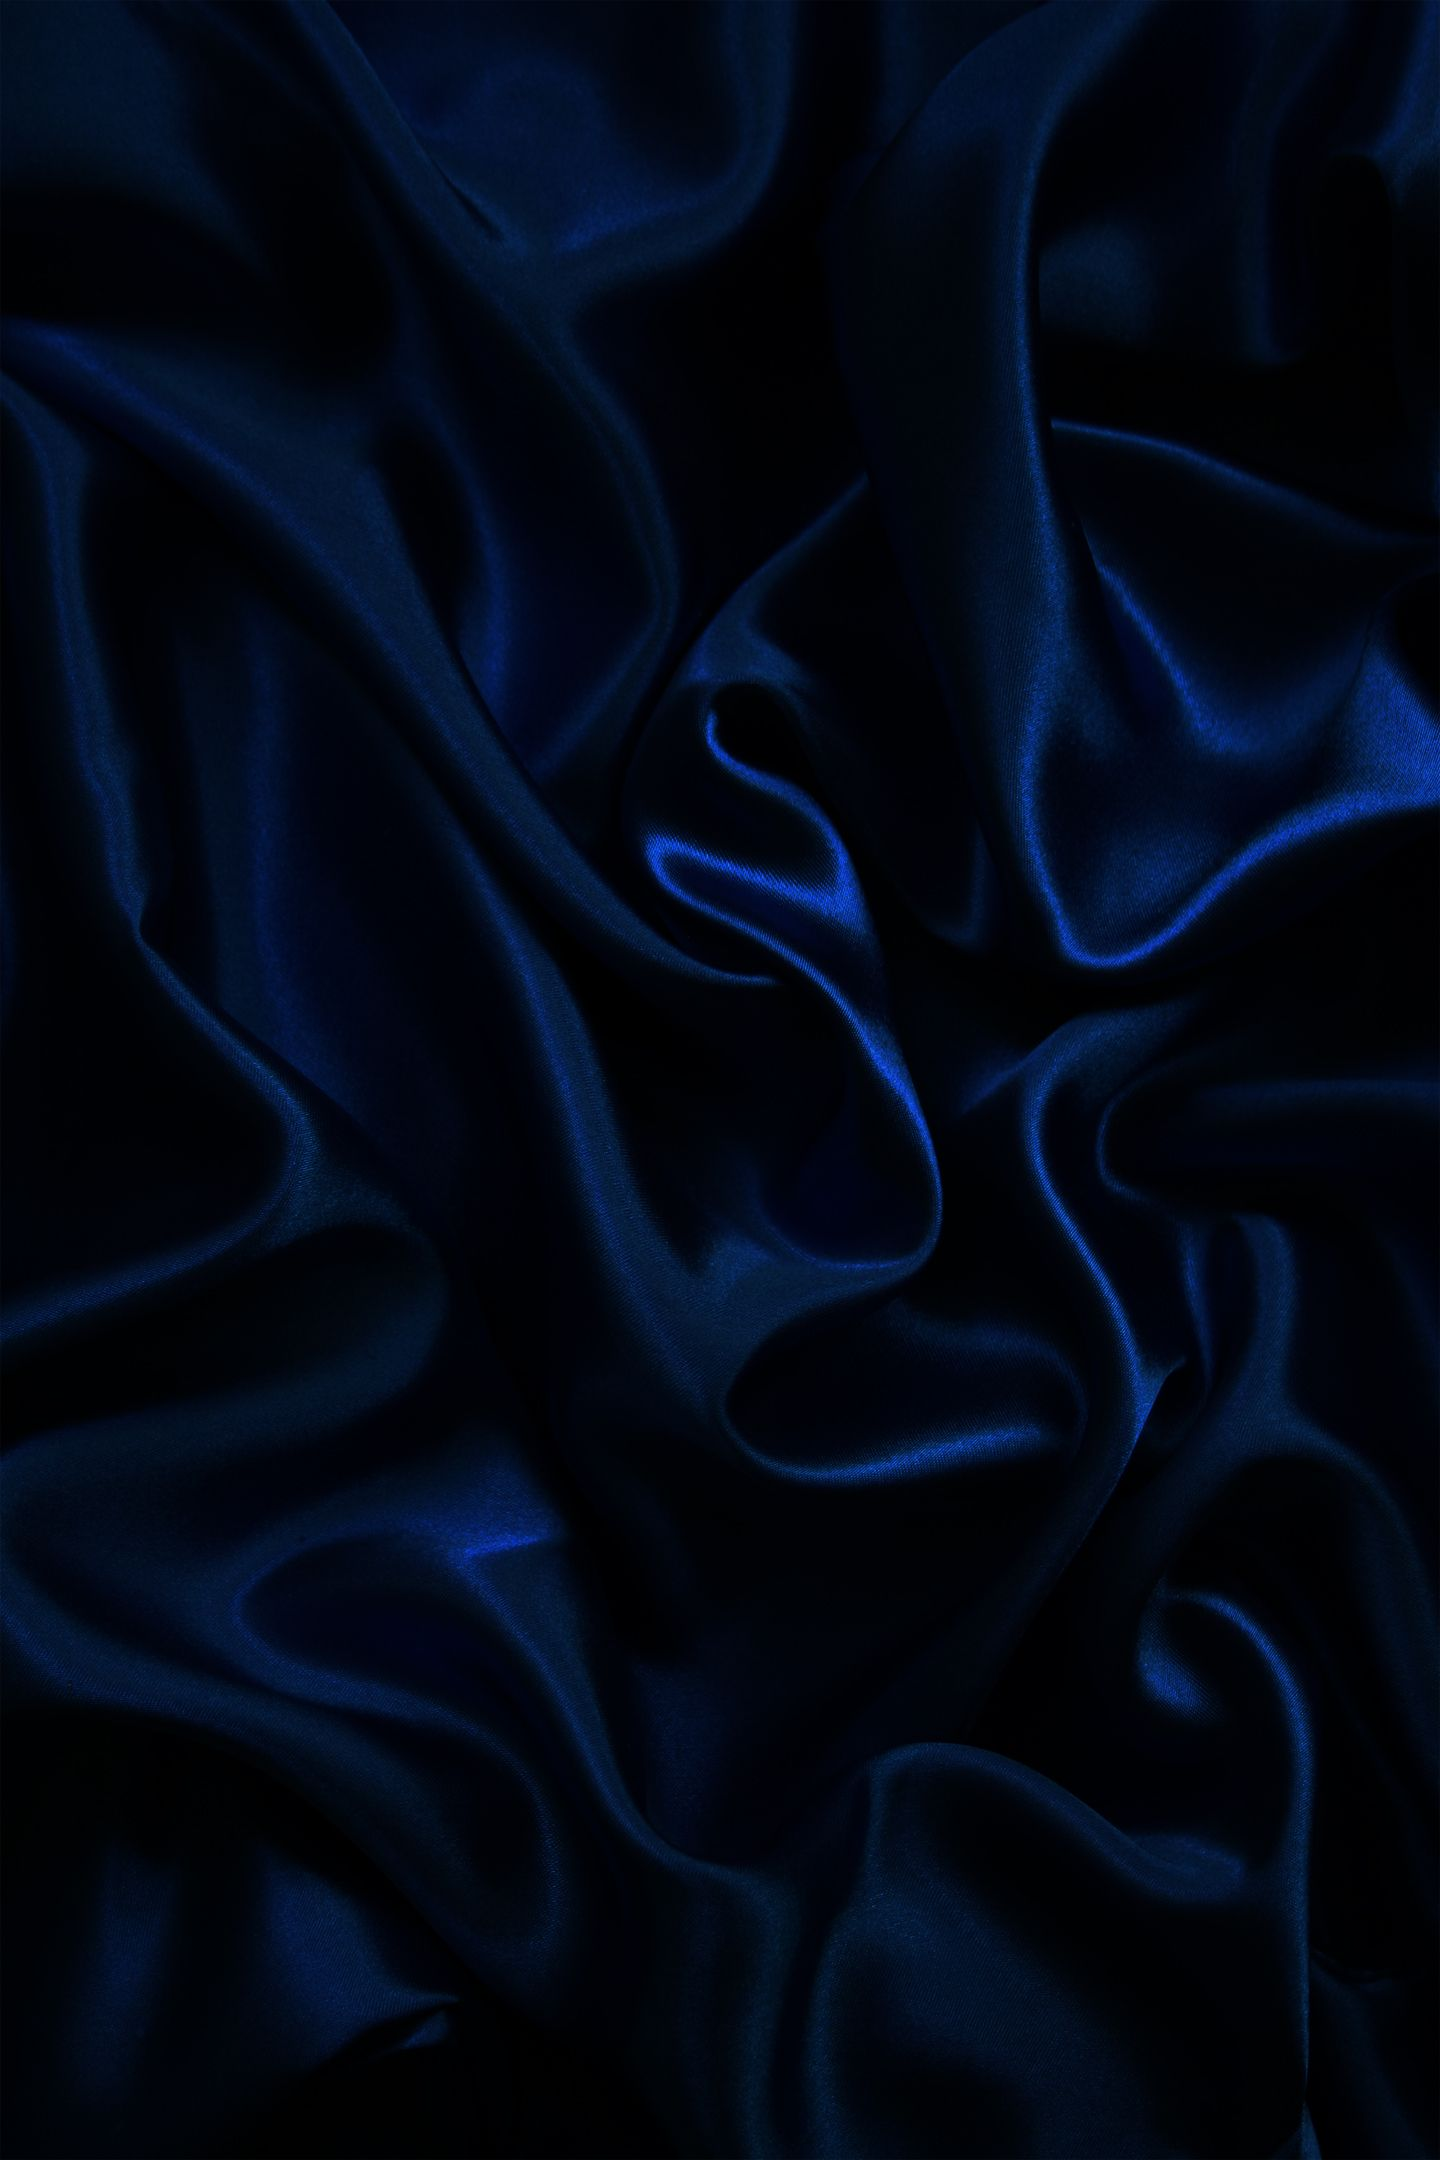 Midnight Blue Satin Background 6058 1440x2160 px ~ WallpaperFort.com ...